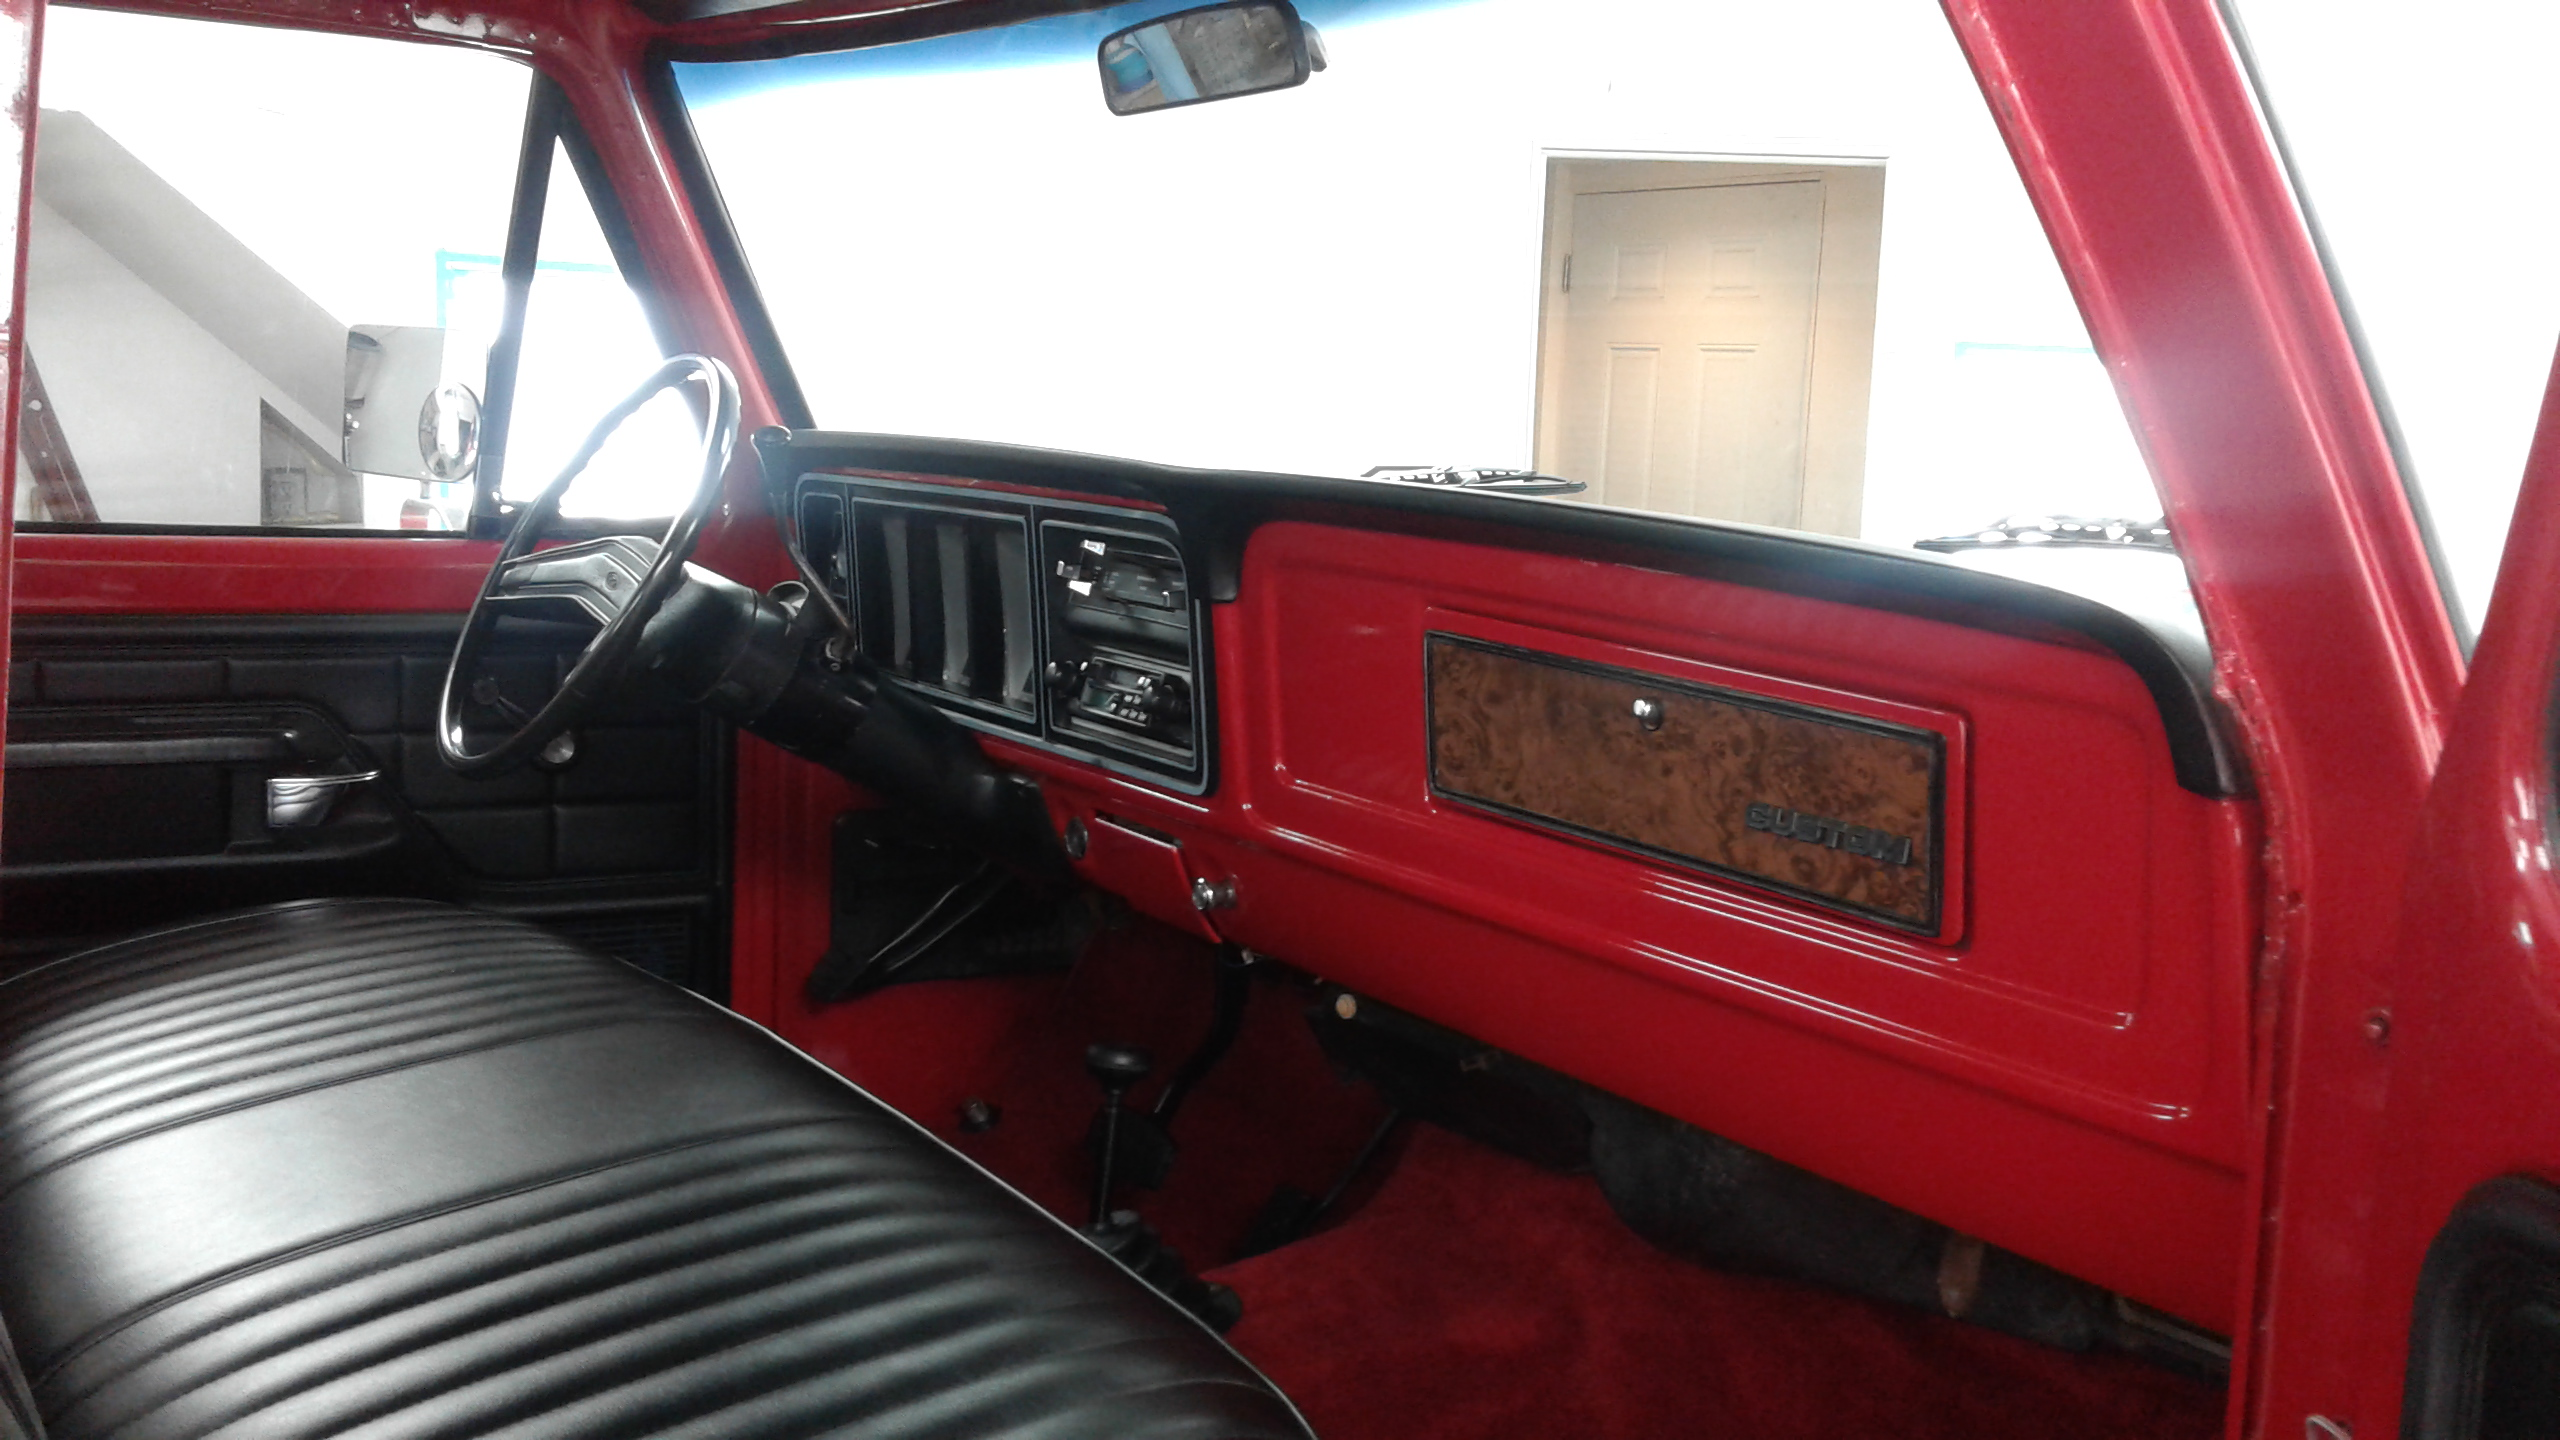 Ford F150 1969 Best New Car Release Date 1968 Chevy K5 Blazer 1978 F 150 4x4 Maxlider Brothers Customs